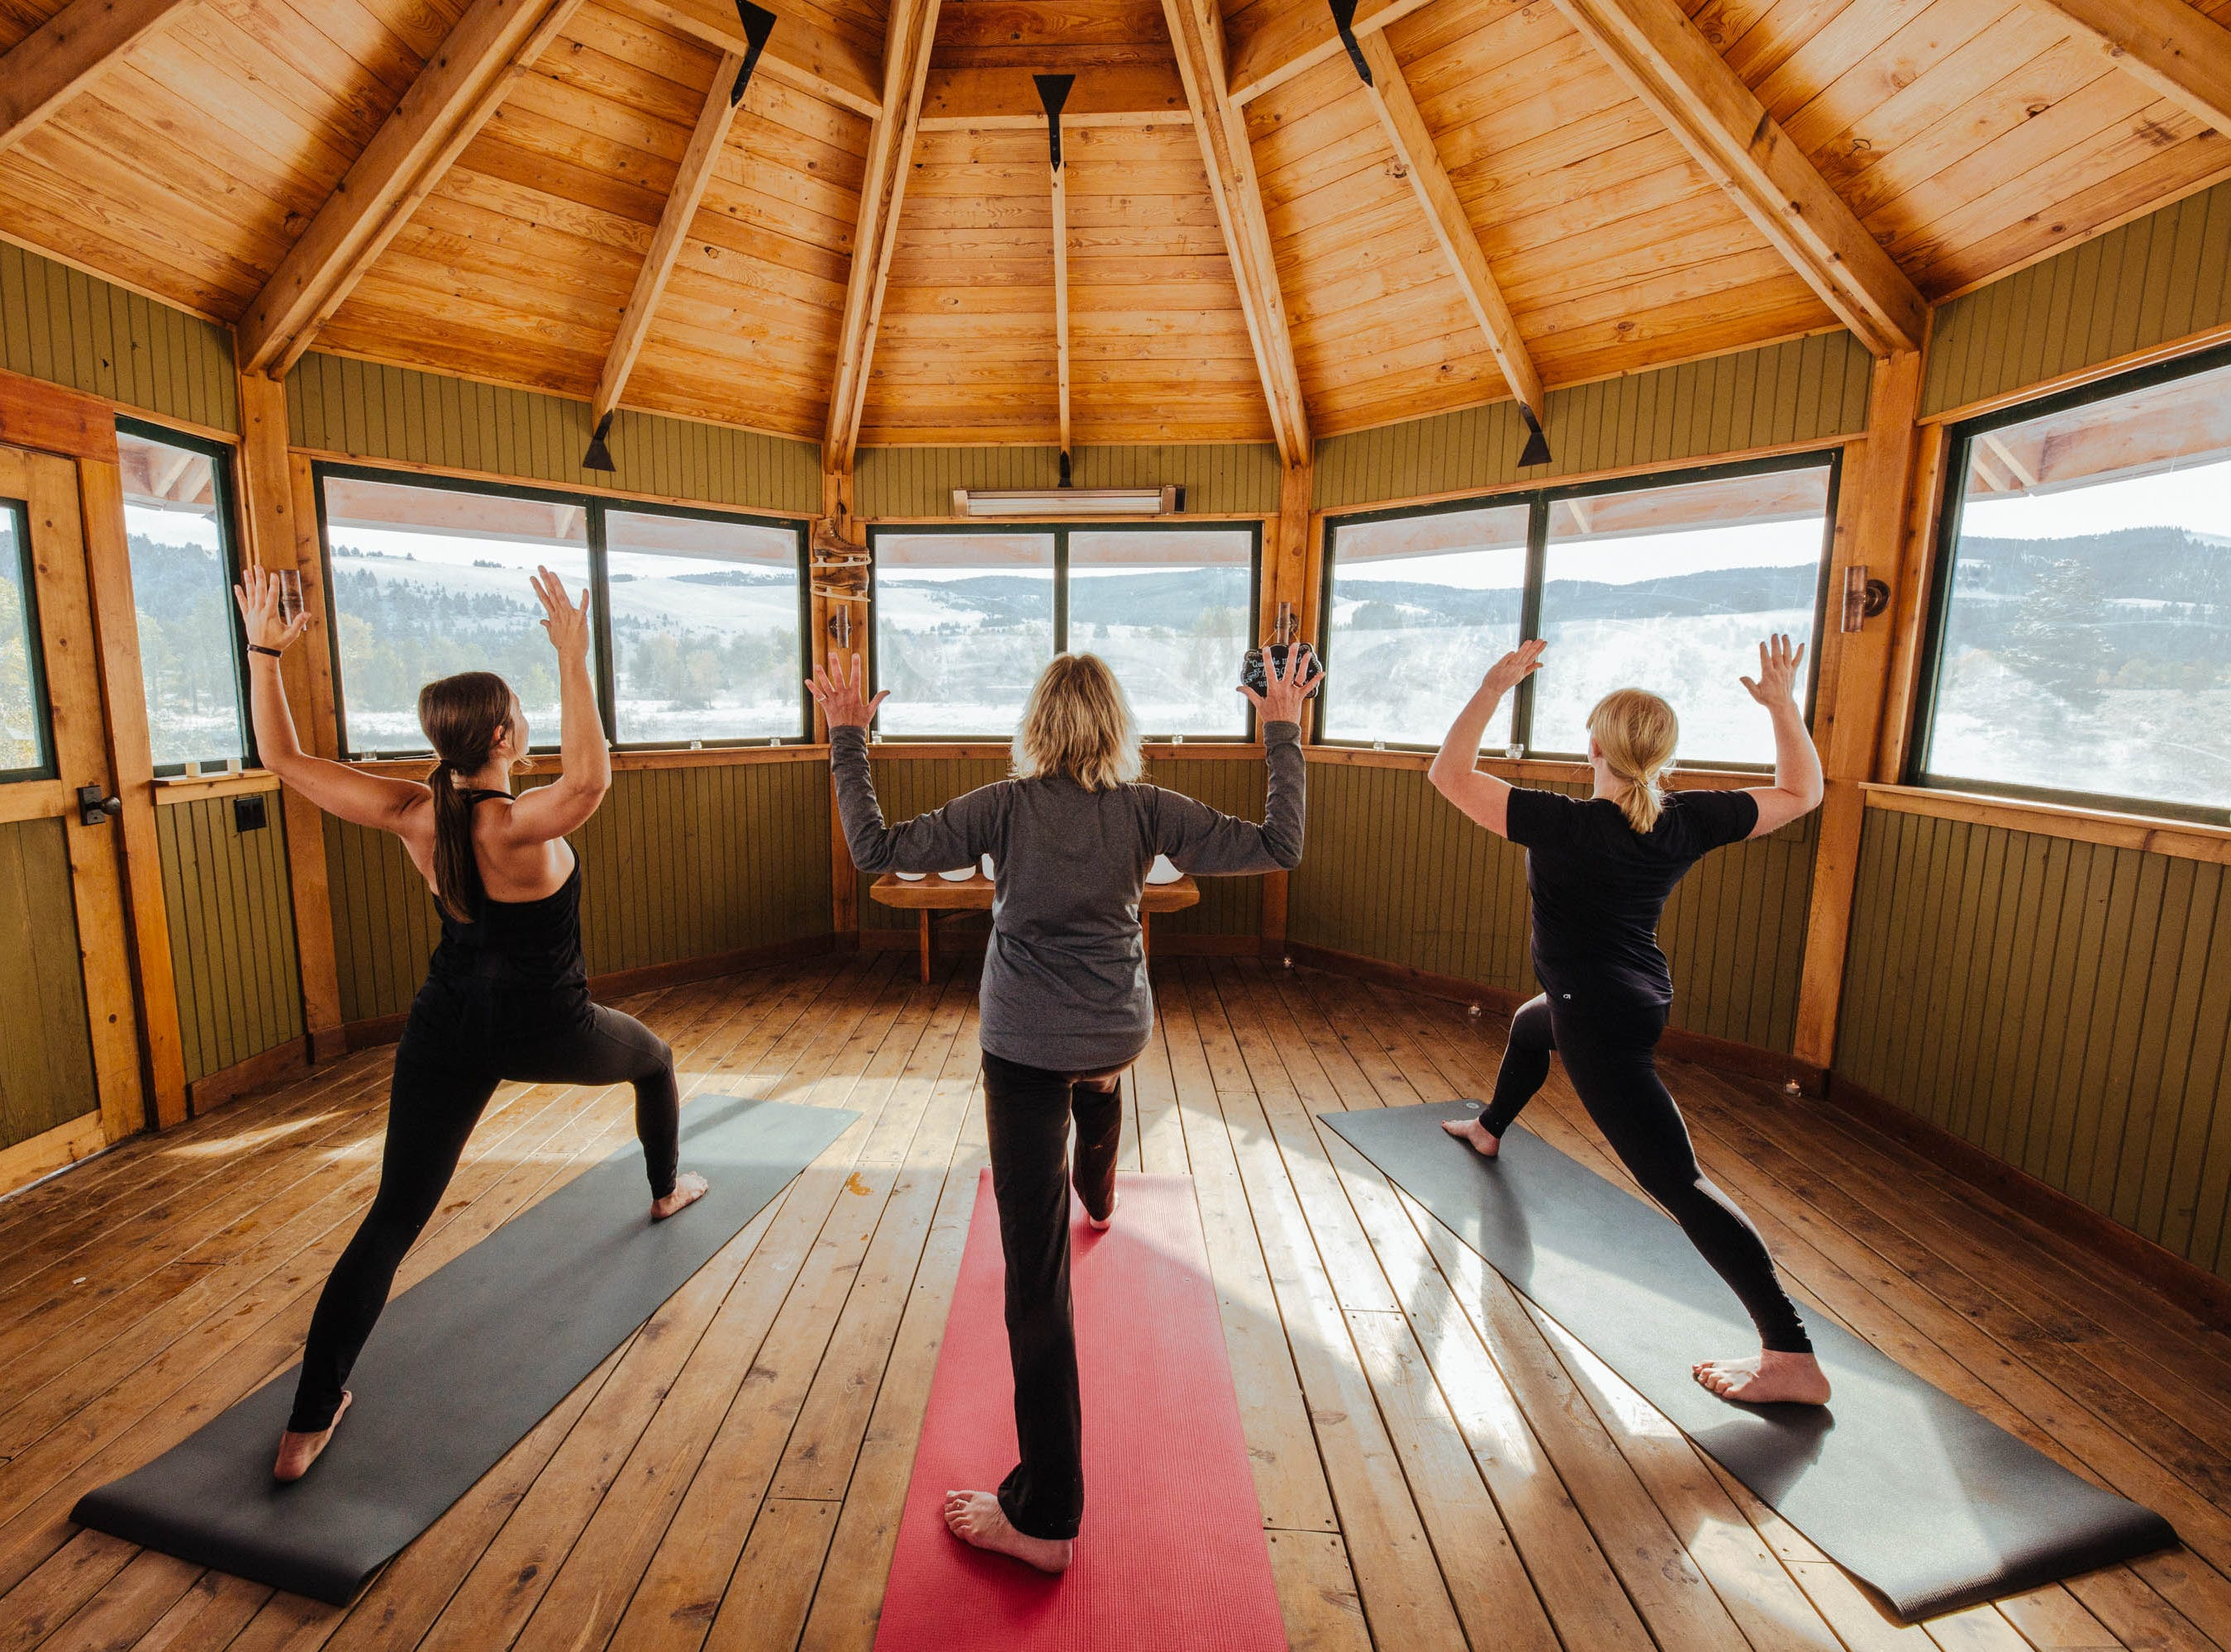 Yoga at The Ranch at Rock Creek, which has a spa